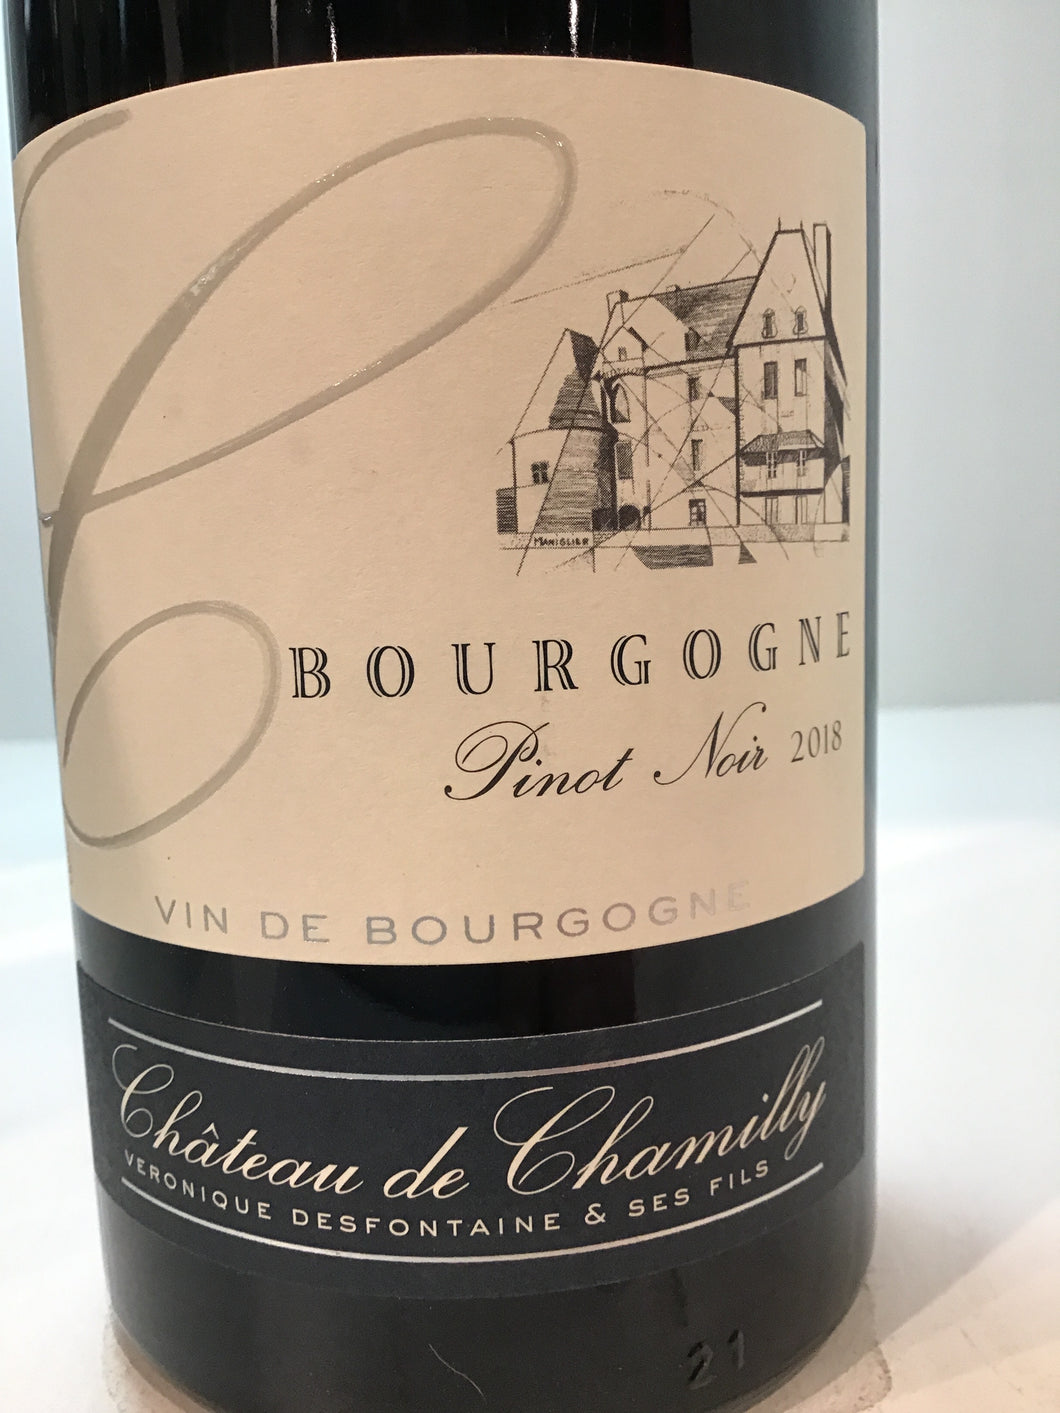 Chateau de Chamilly - Bourgogne - Pinot Noir